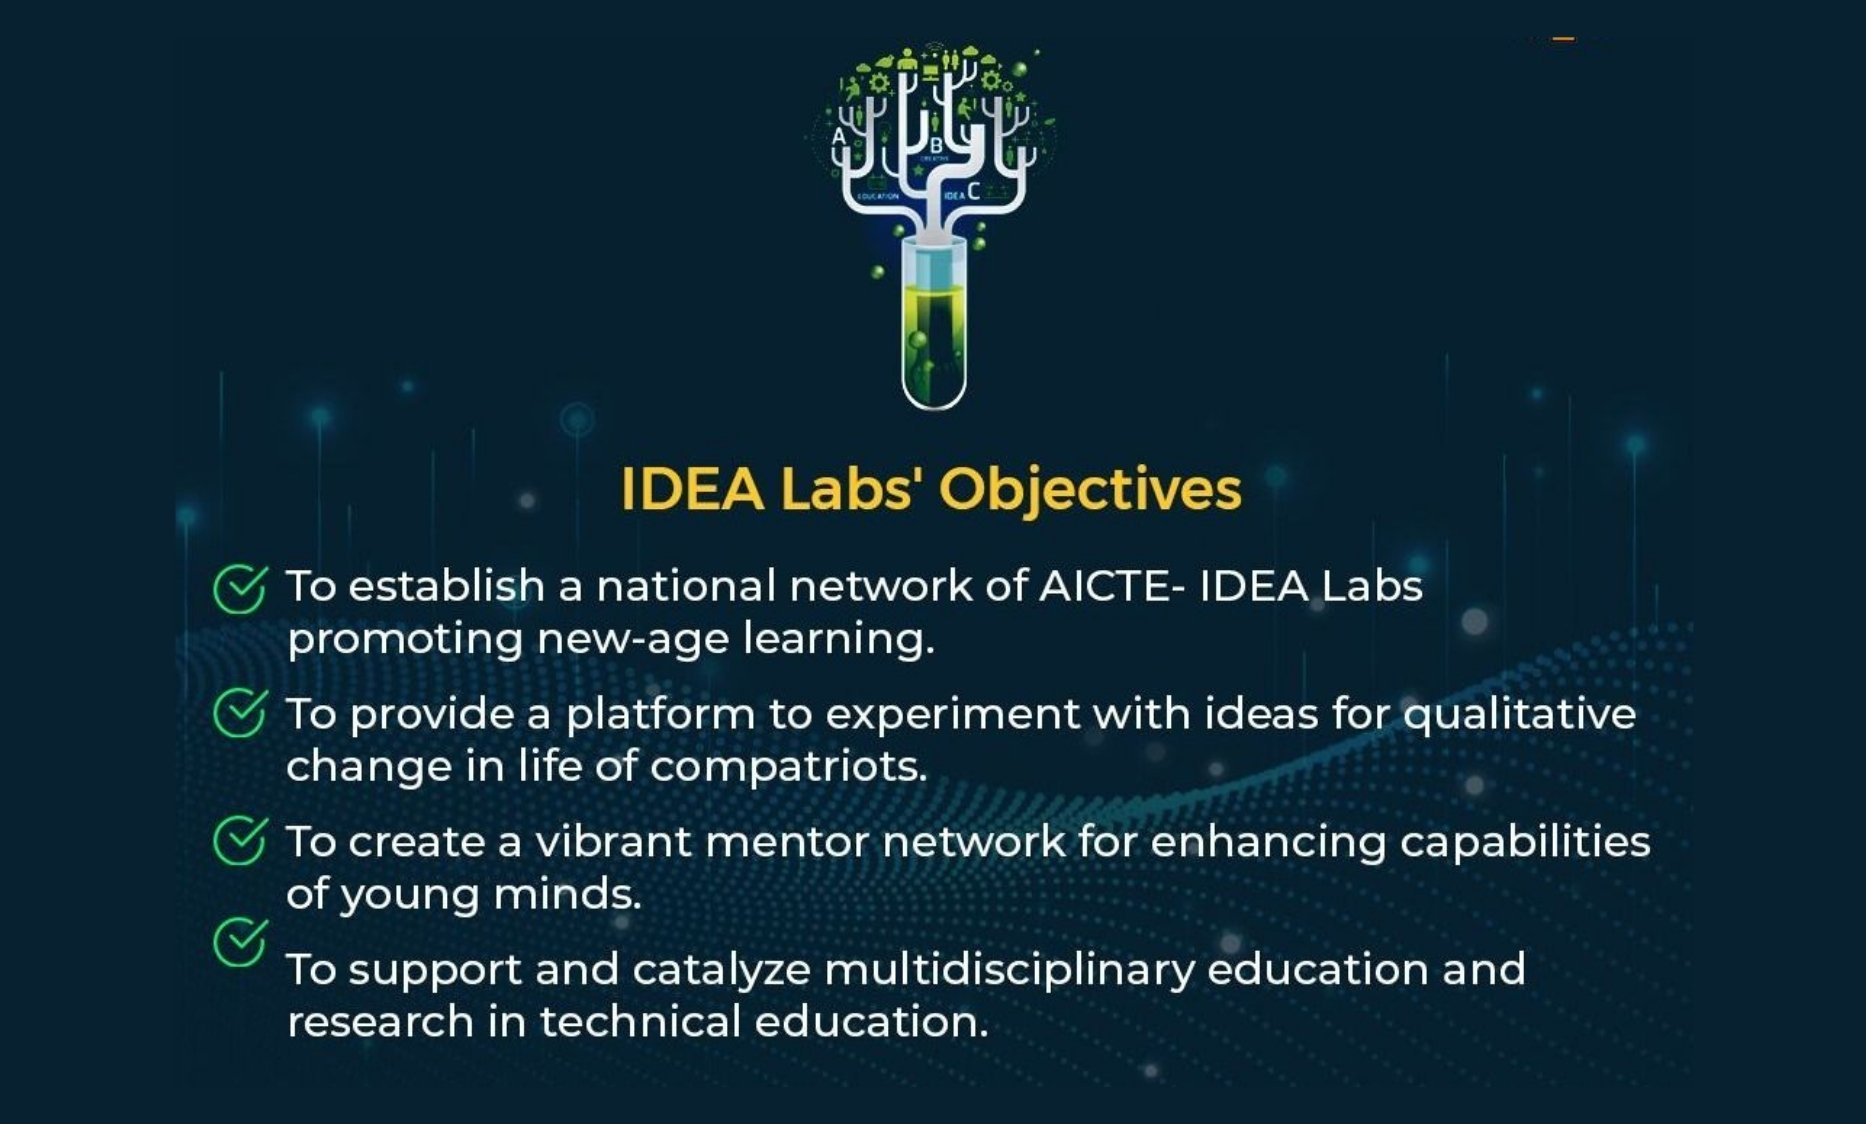 Panipat Institute of Engineering & Technology (PIET) Awarded with a grant of 55 Lacs by AICTE for setting up the Idea Lab- Digpu News